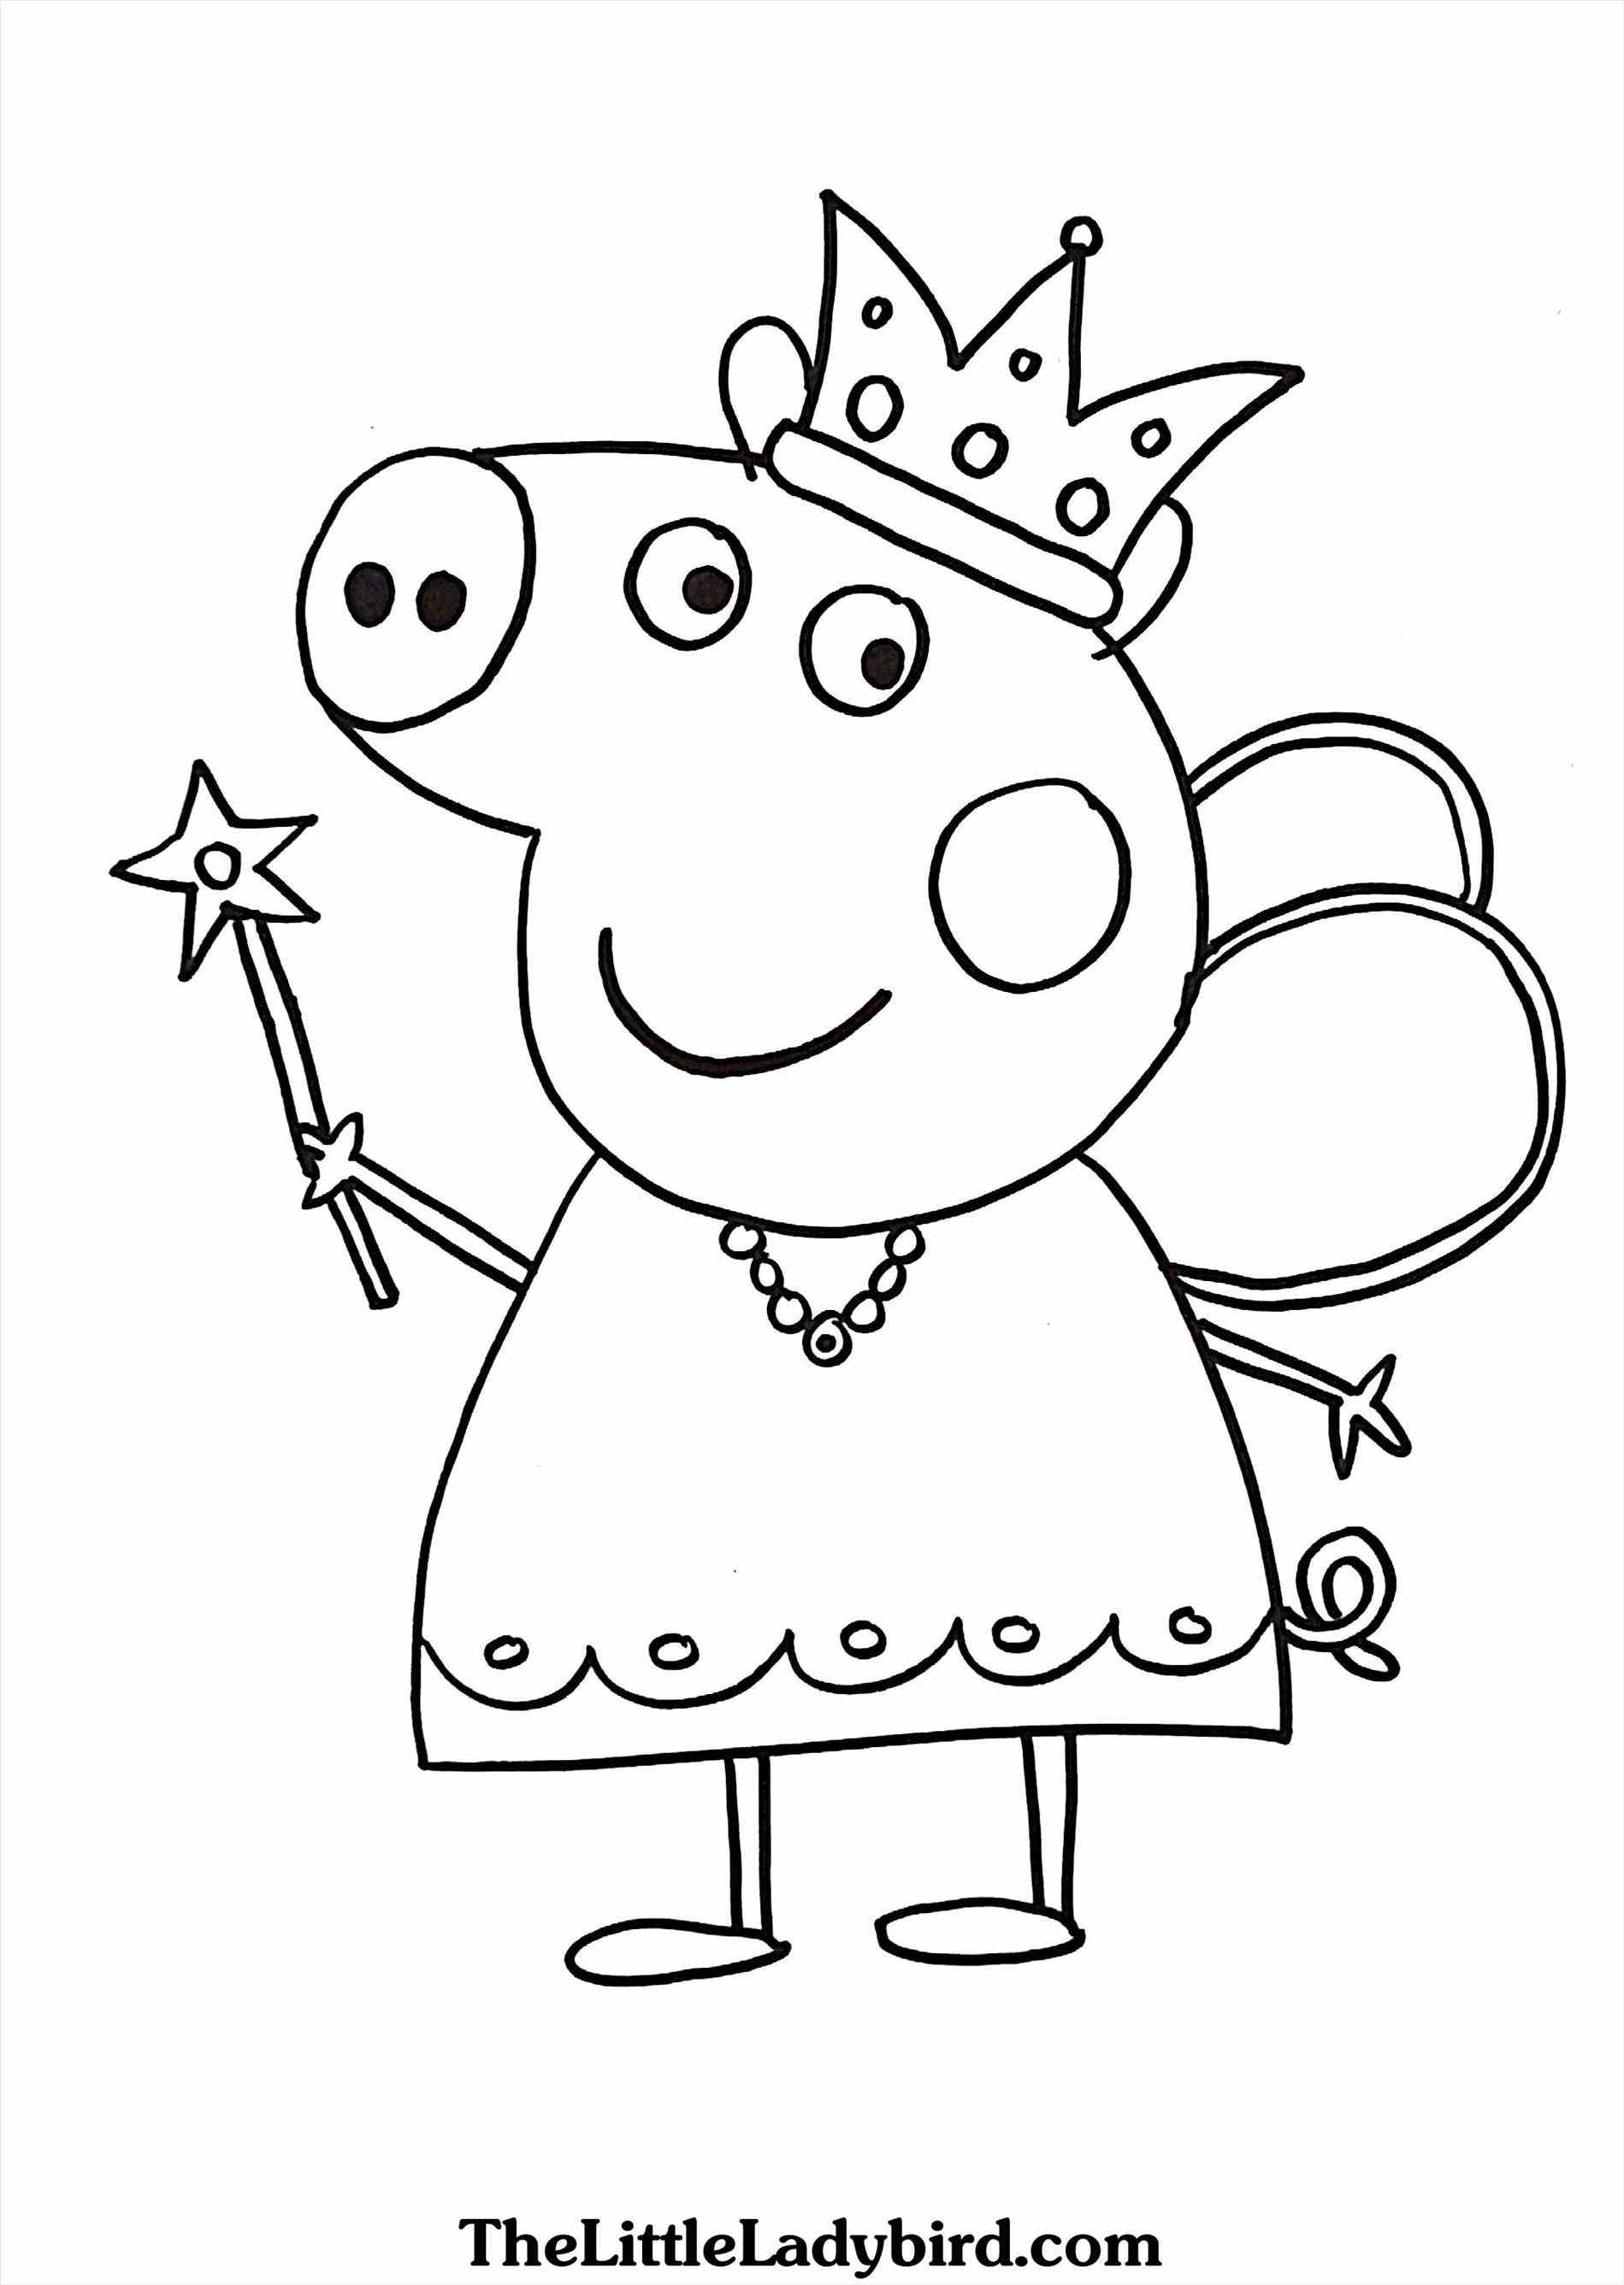 1899x2672 Maya The Bee Coloring Pages For Kids Kiss Printable Free To Print